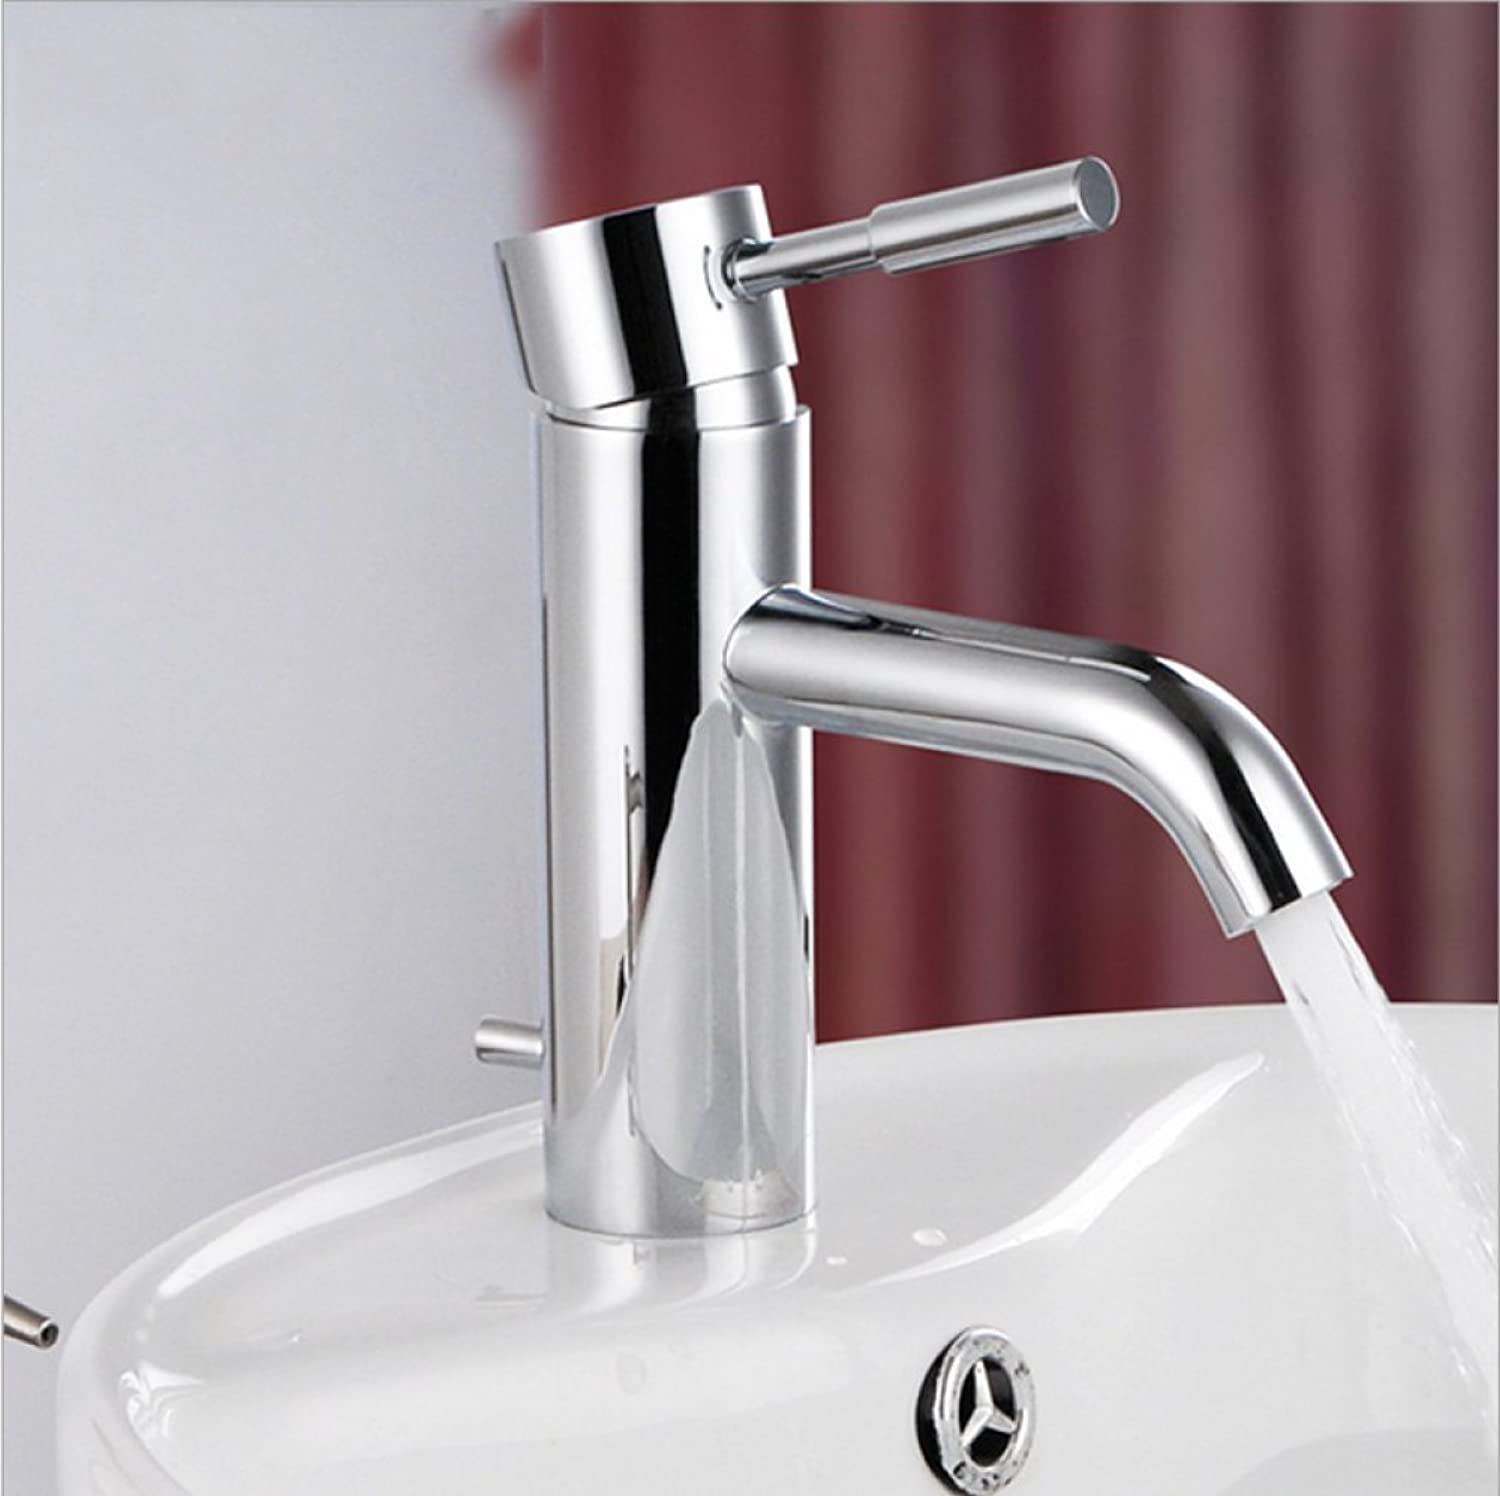 GZF Bathroom Sink Taps Faucet new faucet hot and cold water basin faucet copper casting mixing faucet washbasin faucet single-flush faucet